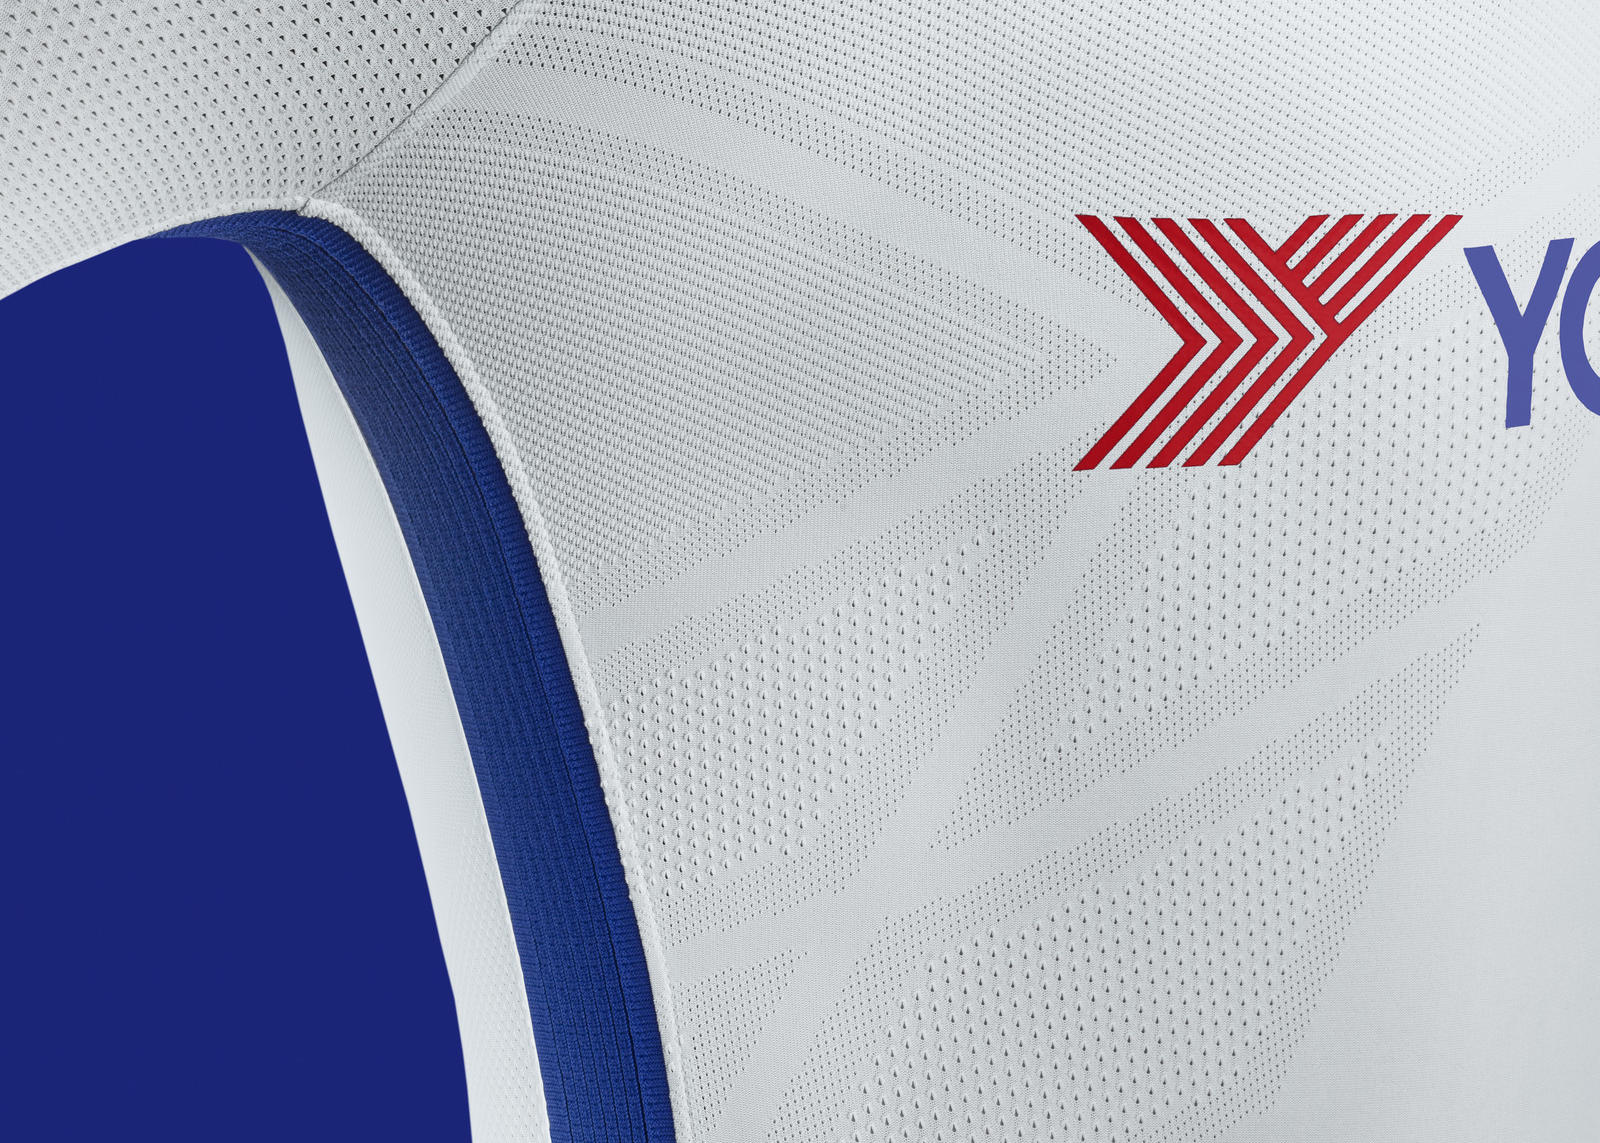 2aaf1eb5553 Chelsea FC and Nike Join Forces To Unveil Home and Away Kits - Nike News